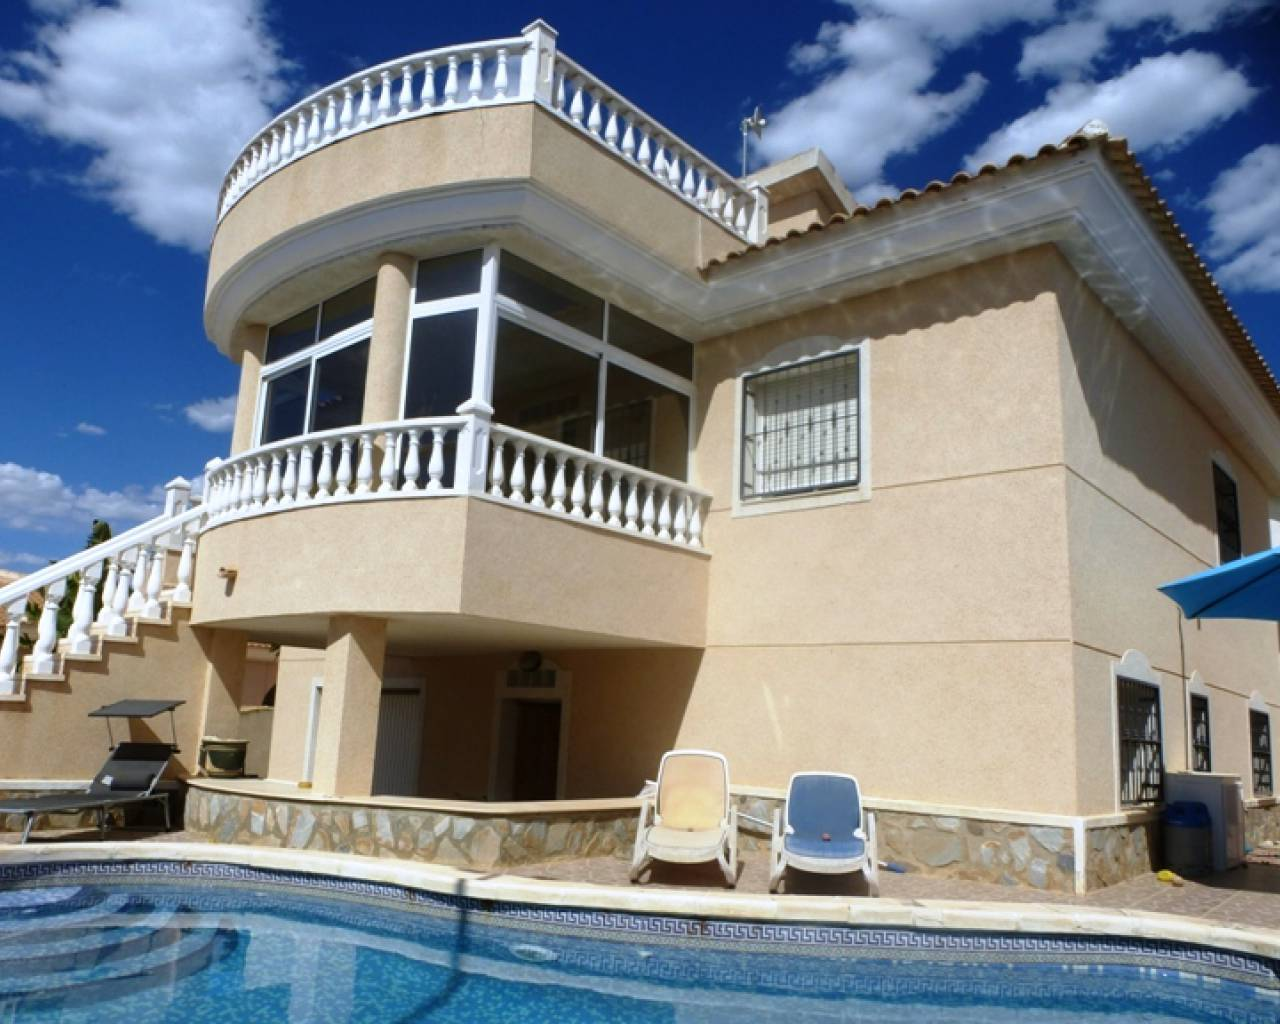 Detached Villa - Venta - Benijófar - Benijófar